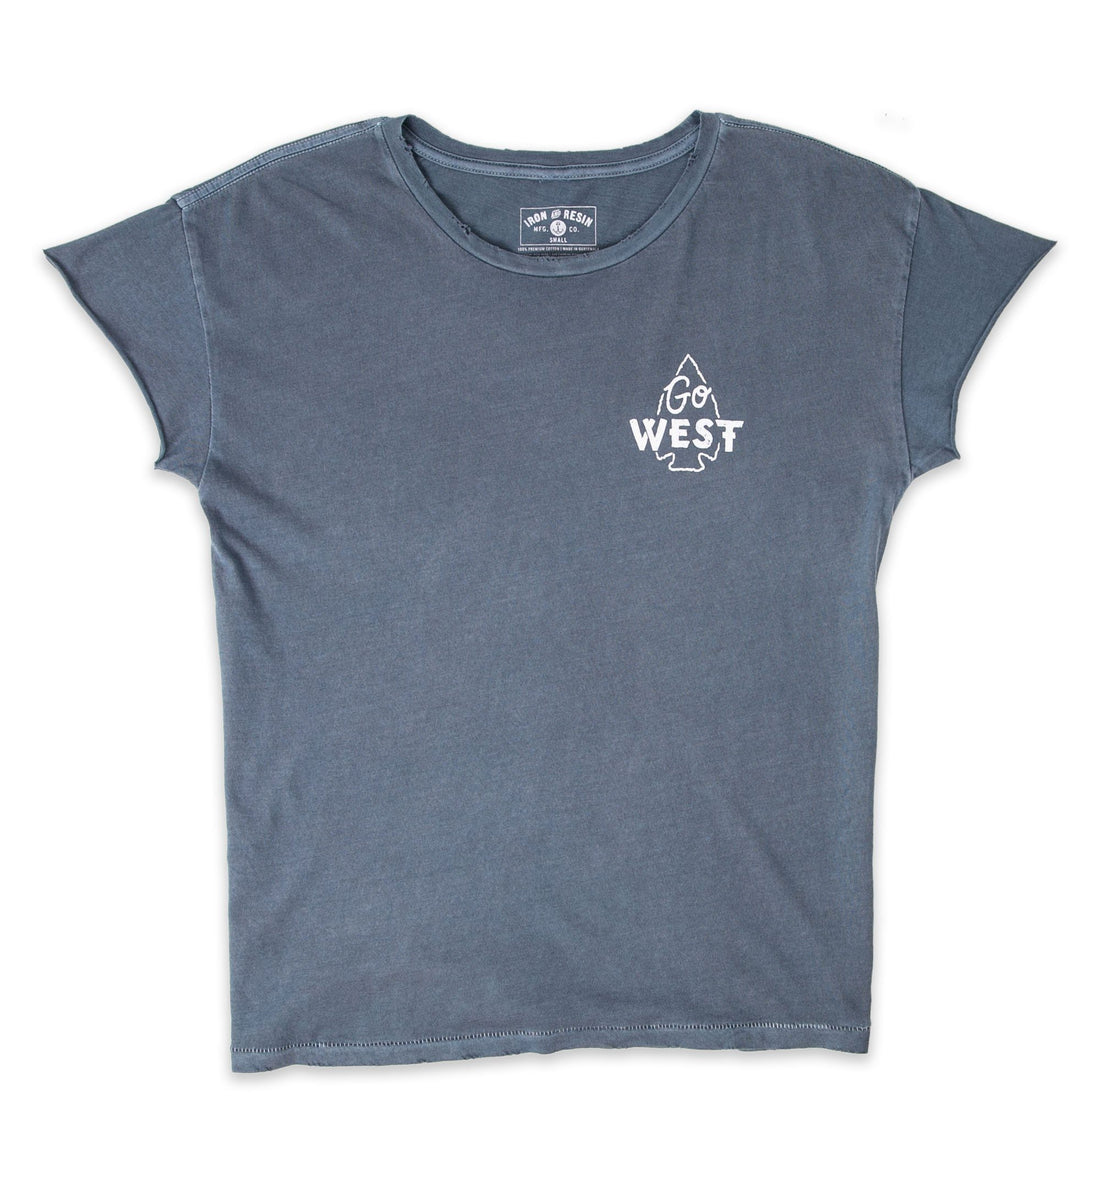 Women's Go West Tee - Tops - Iron and Resin